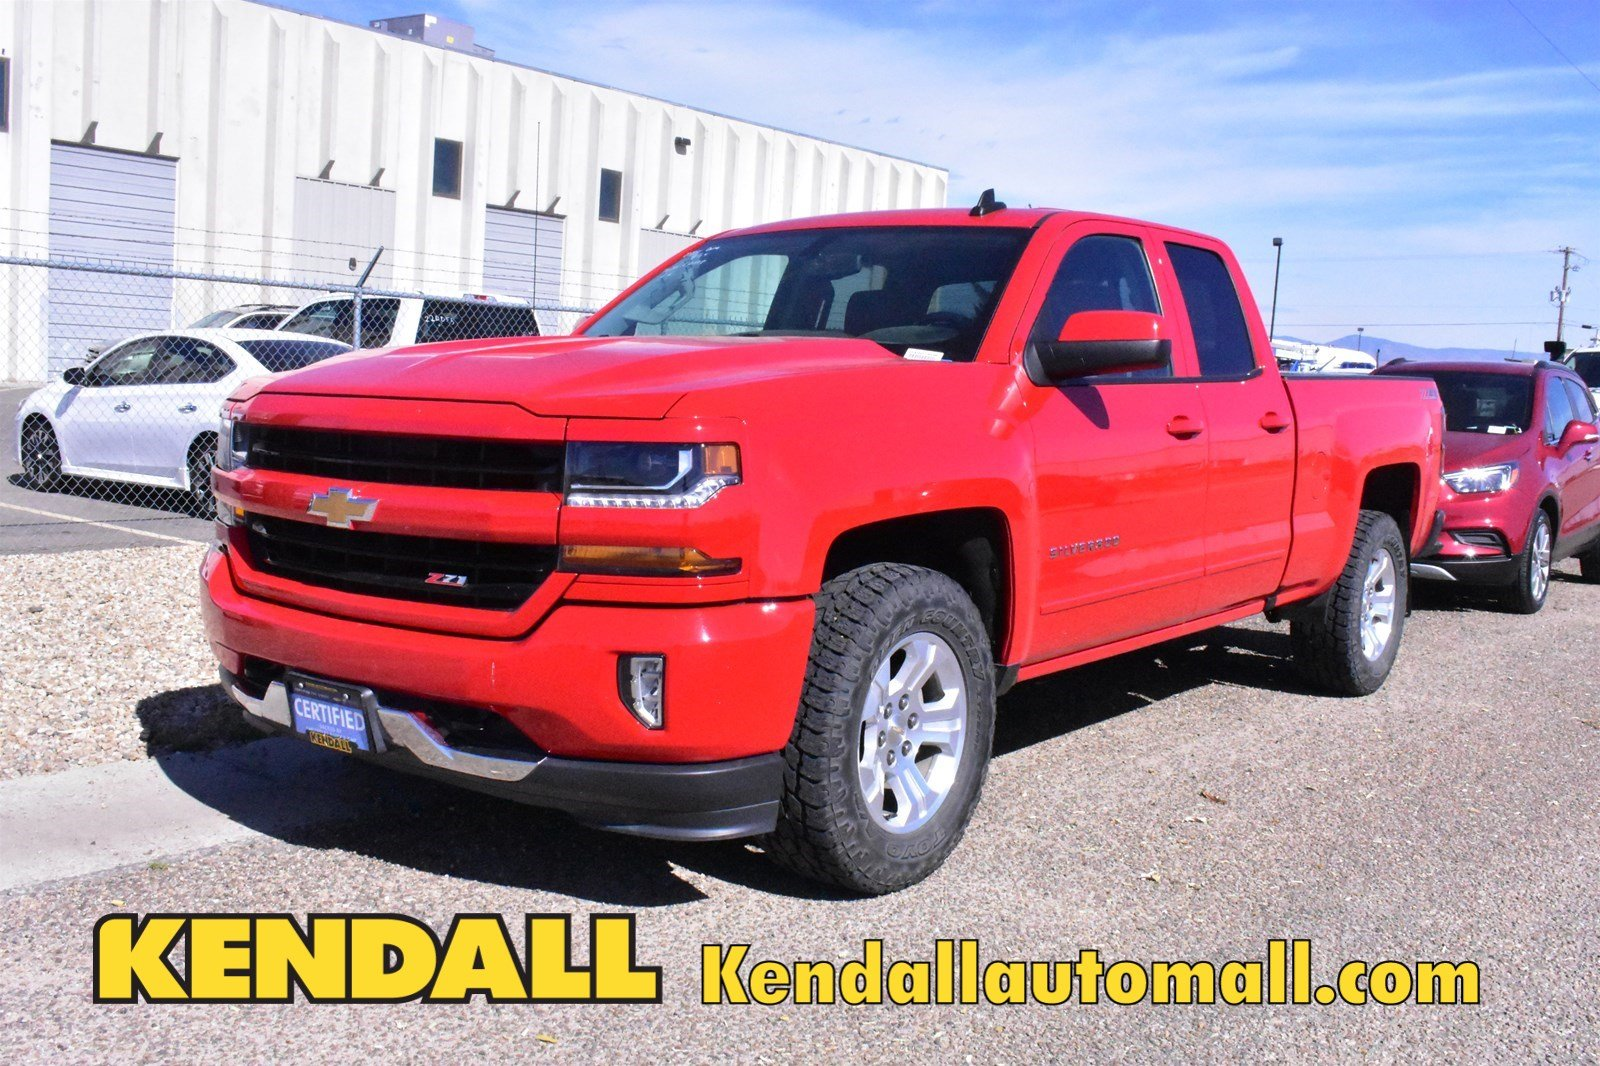 Certified Pre-Owned 2017 Chevrolet Silverado 1500 LT4WD